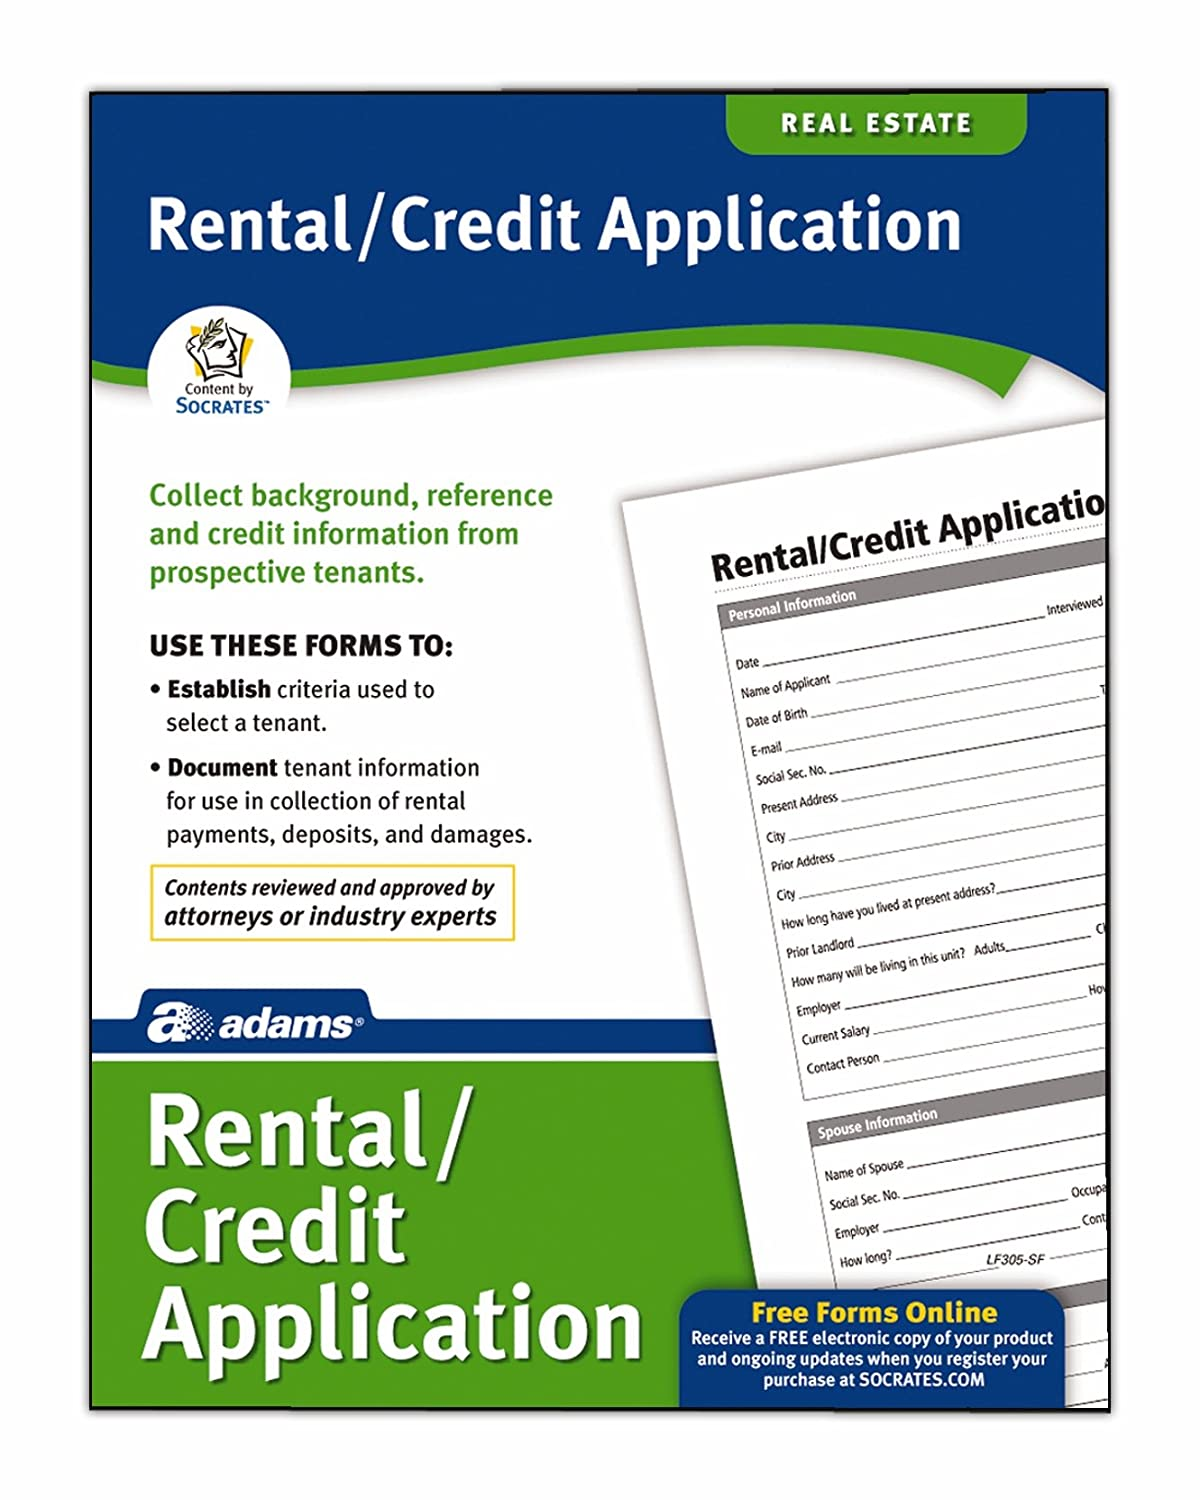 Adams Rental and Credit Application Form, 8.5 x 11 Inch, White (LF305) TOPS Business Forms Inc.